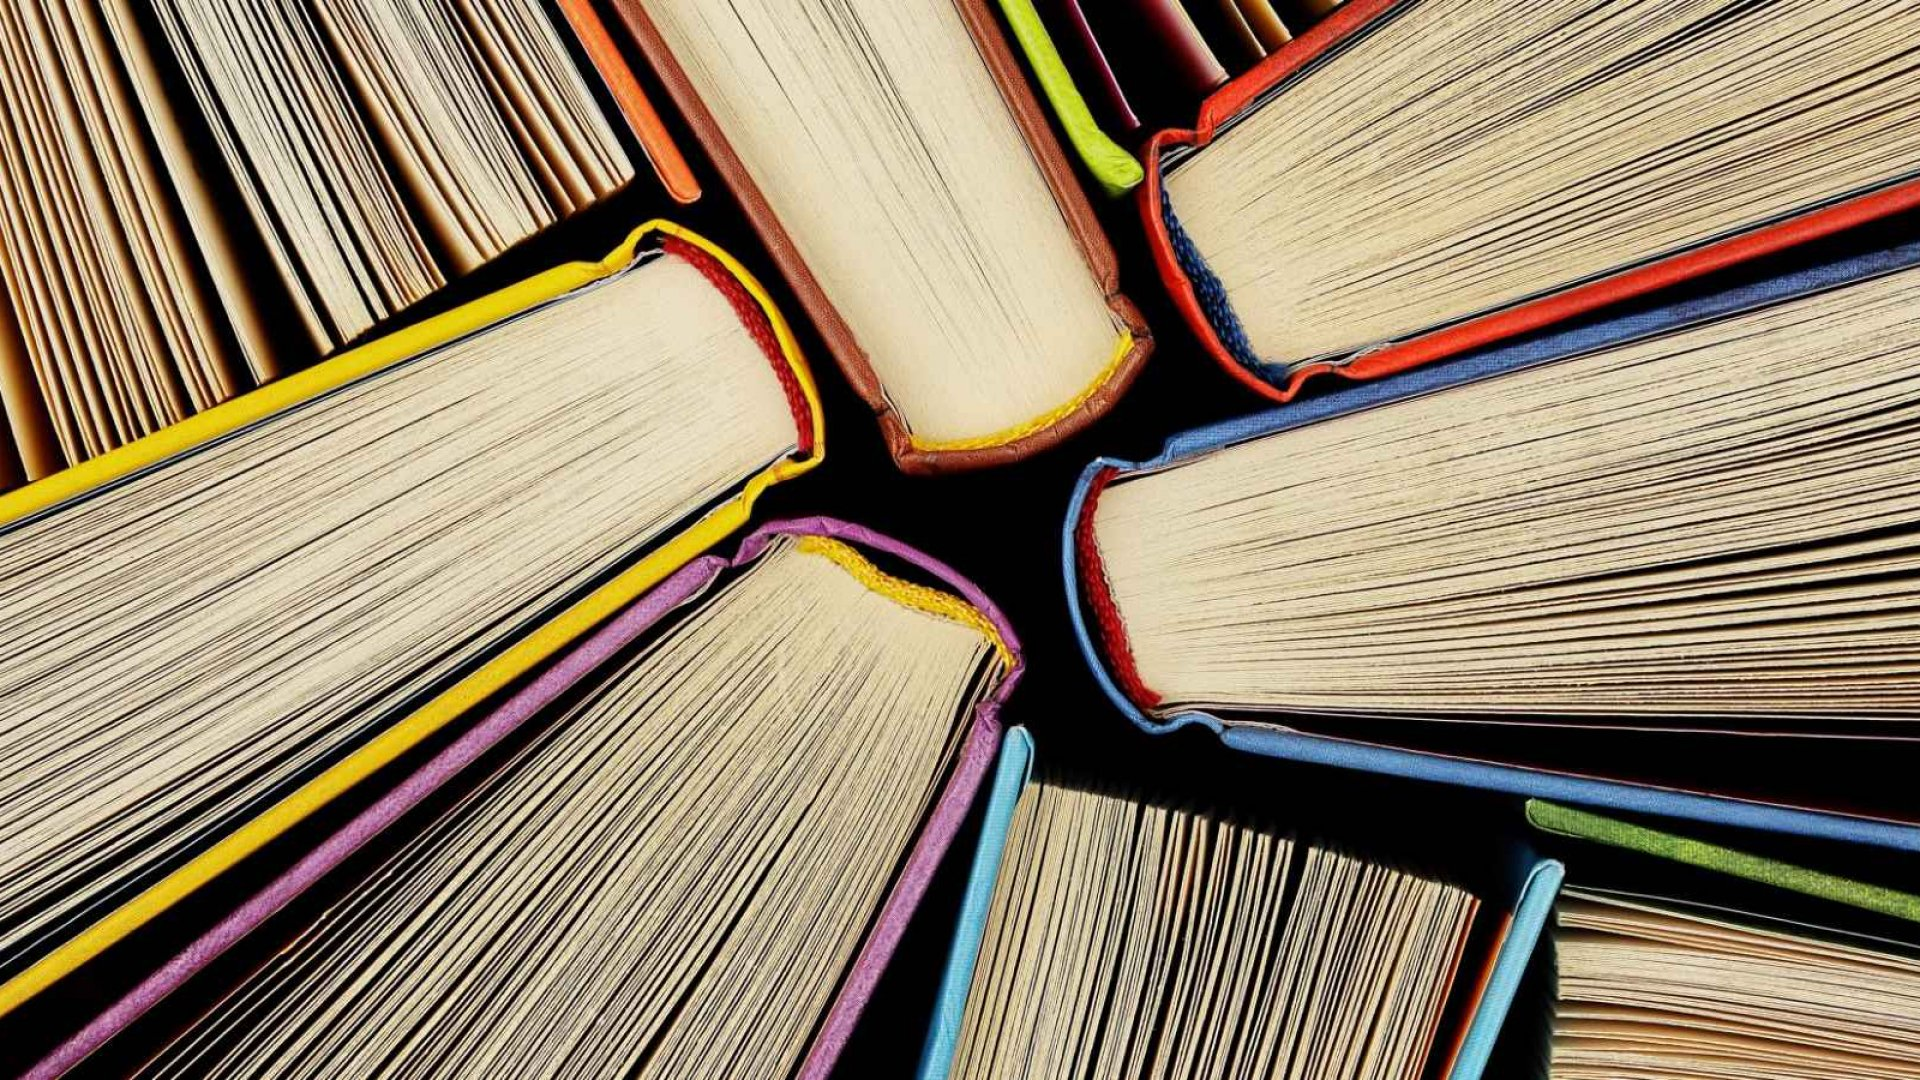 The 10 Best Business Books of 2016 (So Far)